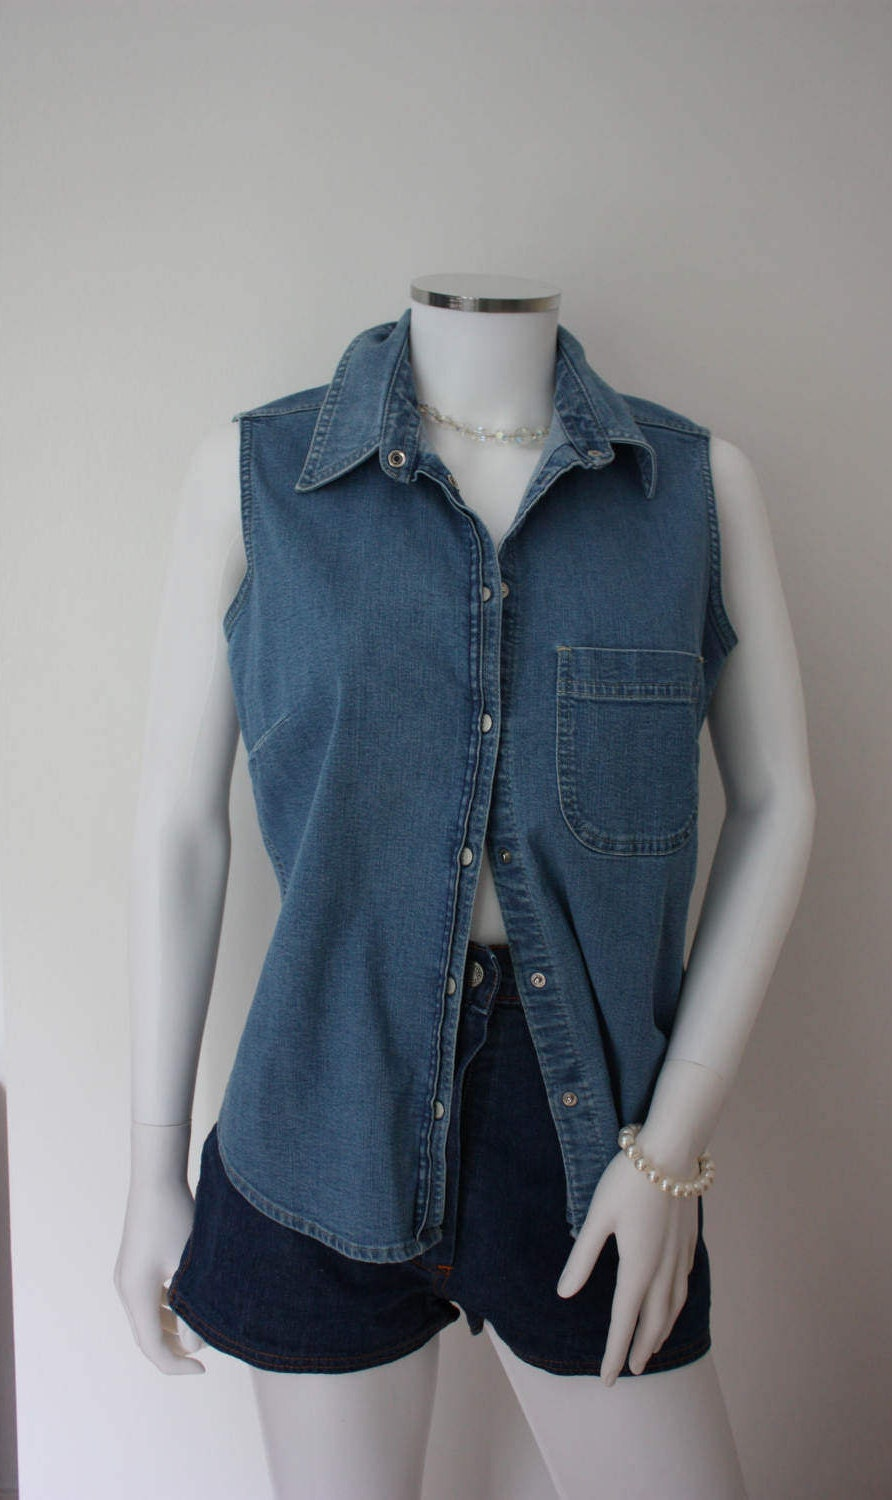 Denim tunic sleeveless denim shirt 90s grunge denim waistcoat festival clothes indie clothes country and western style clothes